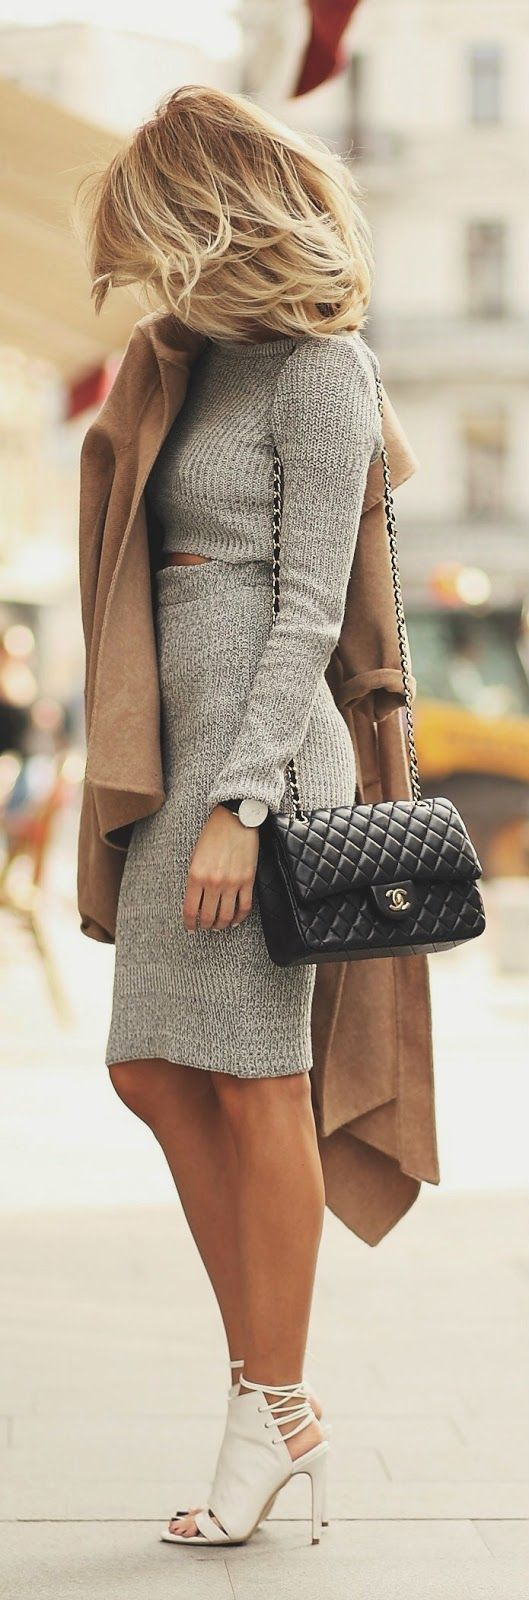 (like the hair) Grey Cropped + Zara Camel Coat, Chanel Bag • Street 'CHIC • ✿ιиѕριяαтισи❀ #abbigliamento